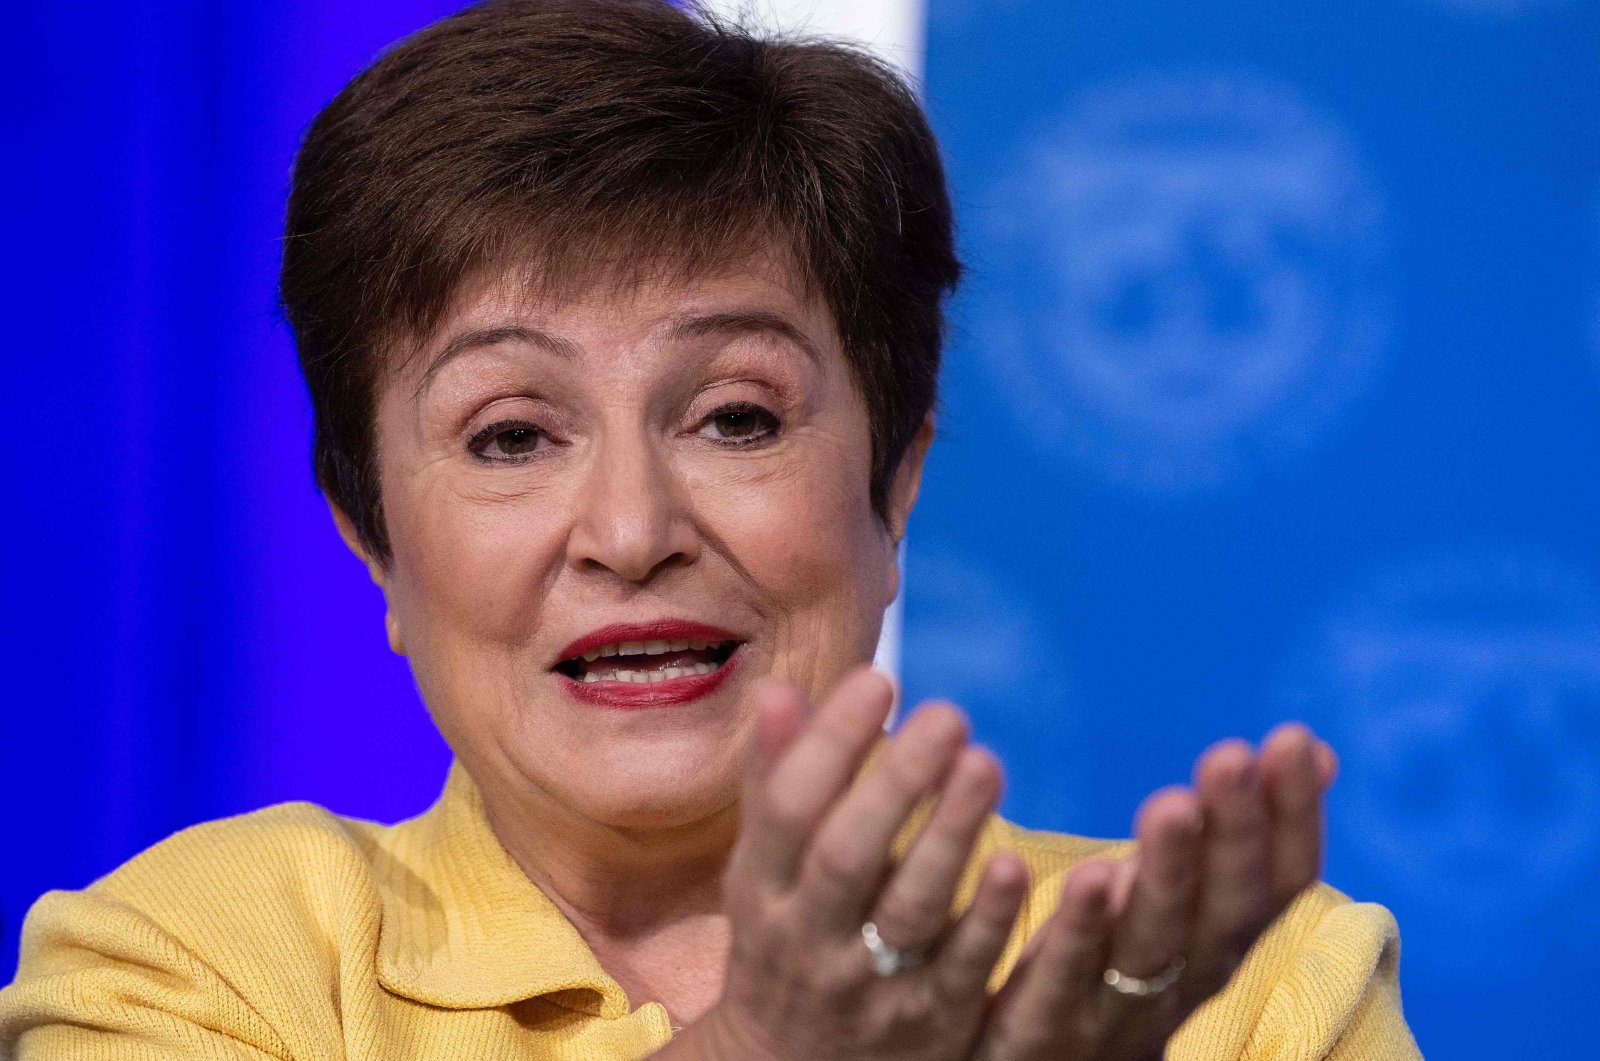 IMF Managing Director Kristalina Georgieva speaks at a press briefing on COVID-19 in Washington, D.C., U.S., March 4, 2020. (AFP Photo)